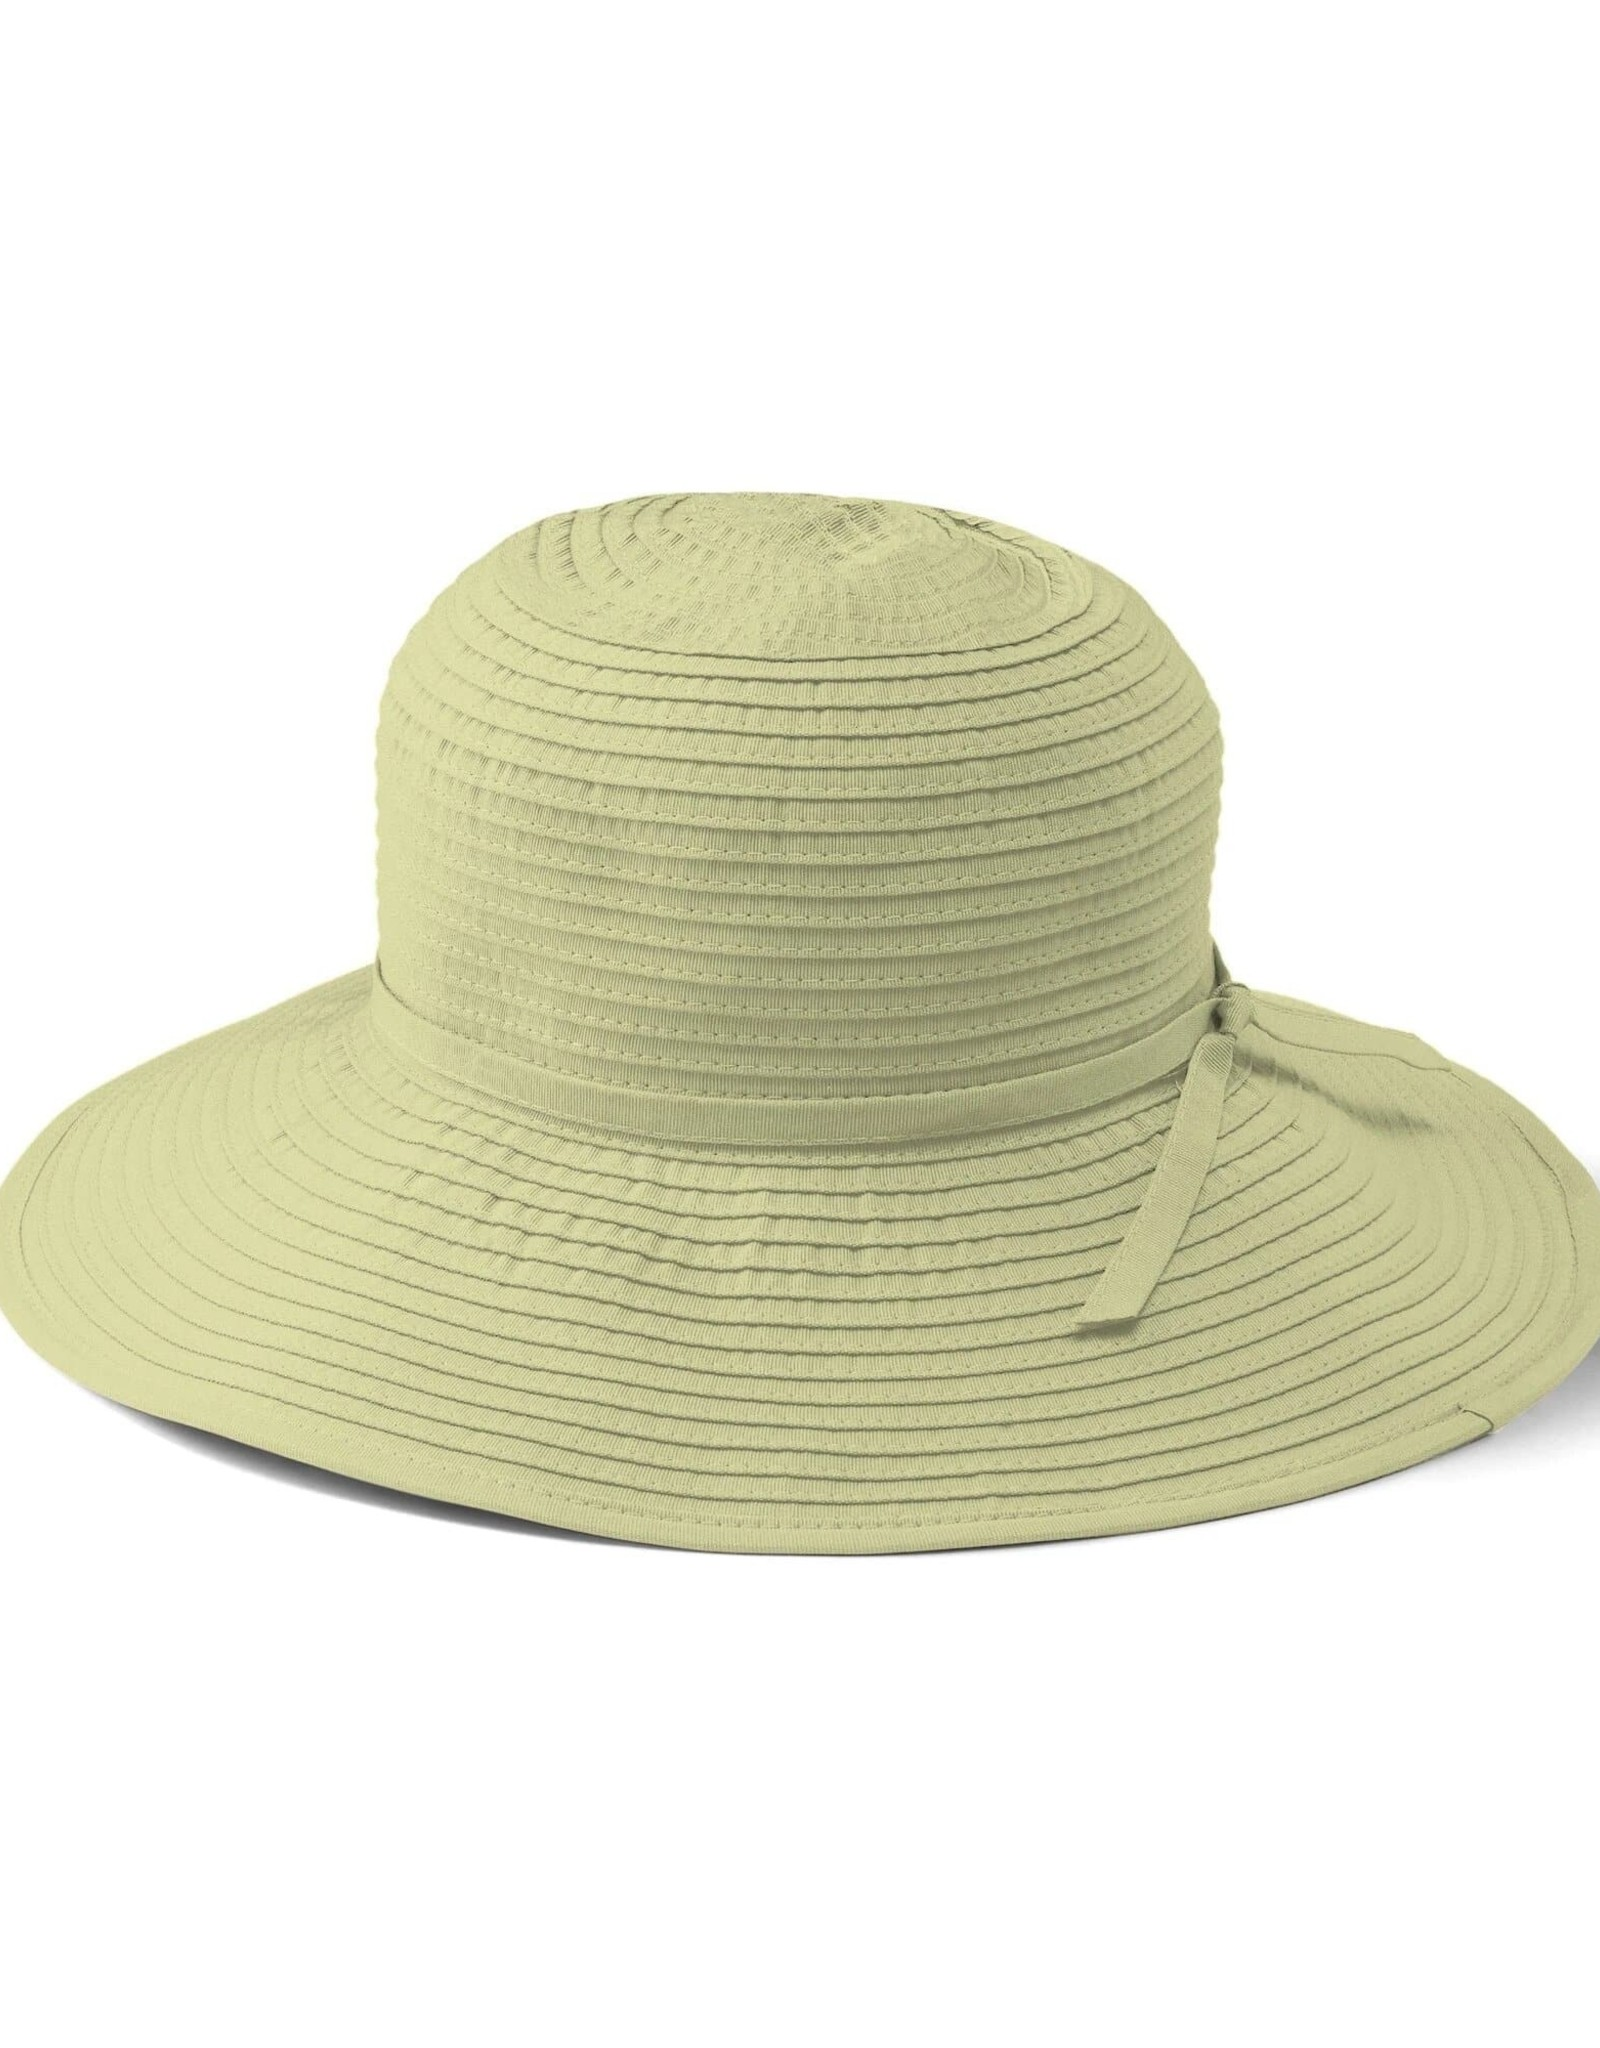 SAN DIEGO HAT Medium Brim Ribbon Hat - Cream